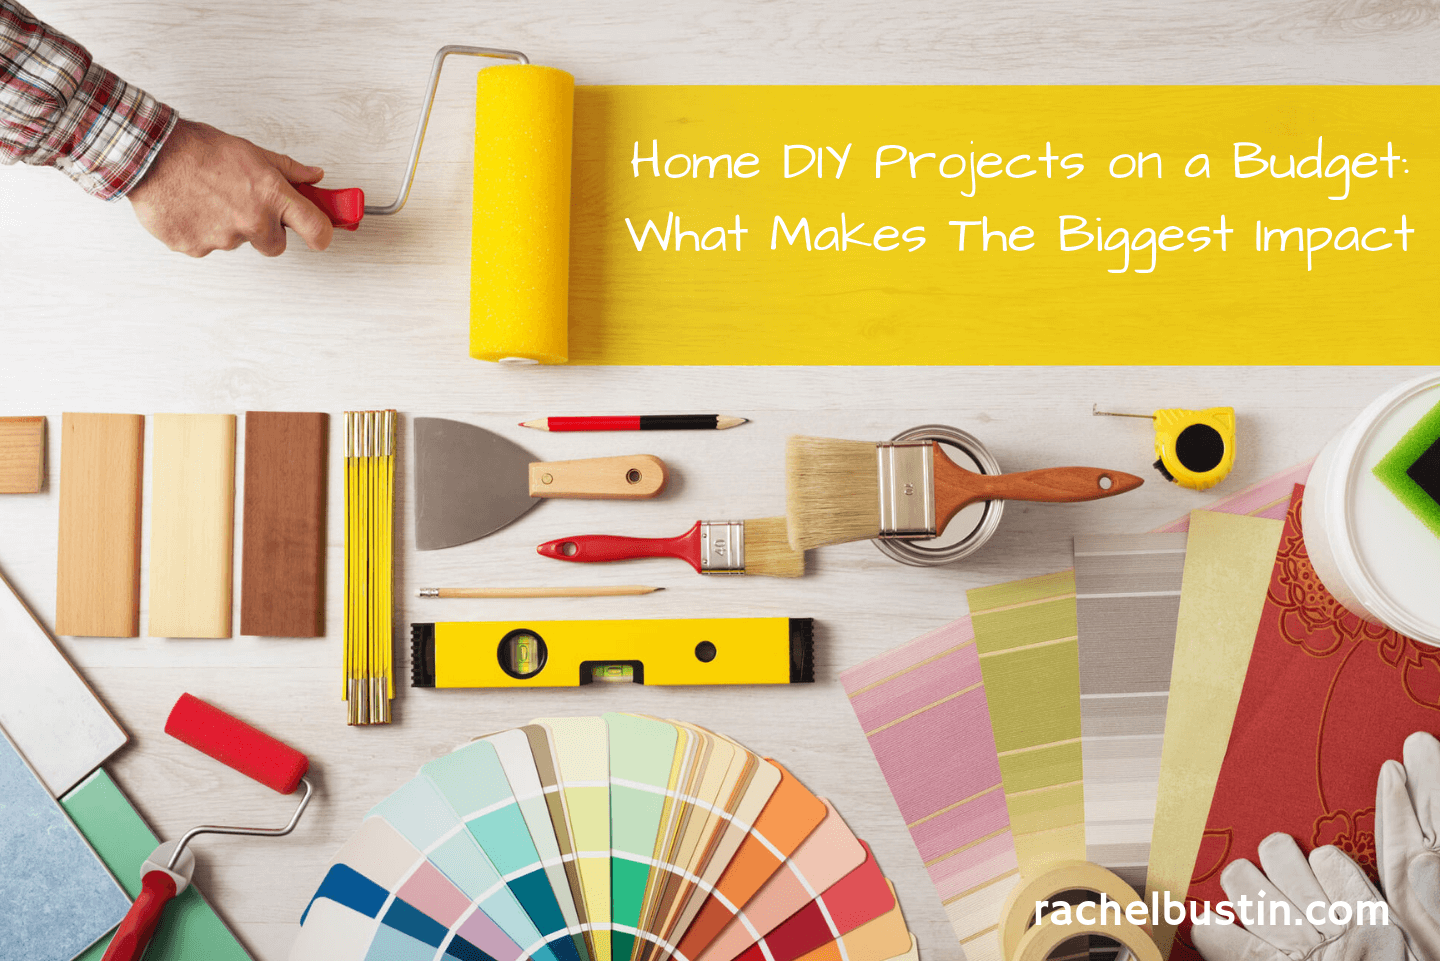 Home DIY Projects on a Budget - What Makes The Biggest Impact - Home DIY on a budget, Home diy decor, room makeovers, small spaces, renovation, kitchen, flooring, garden, updating lighting #homediy #homediyonabudget - see more at rachelbustin.com